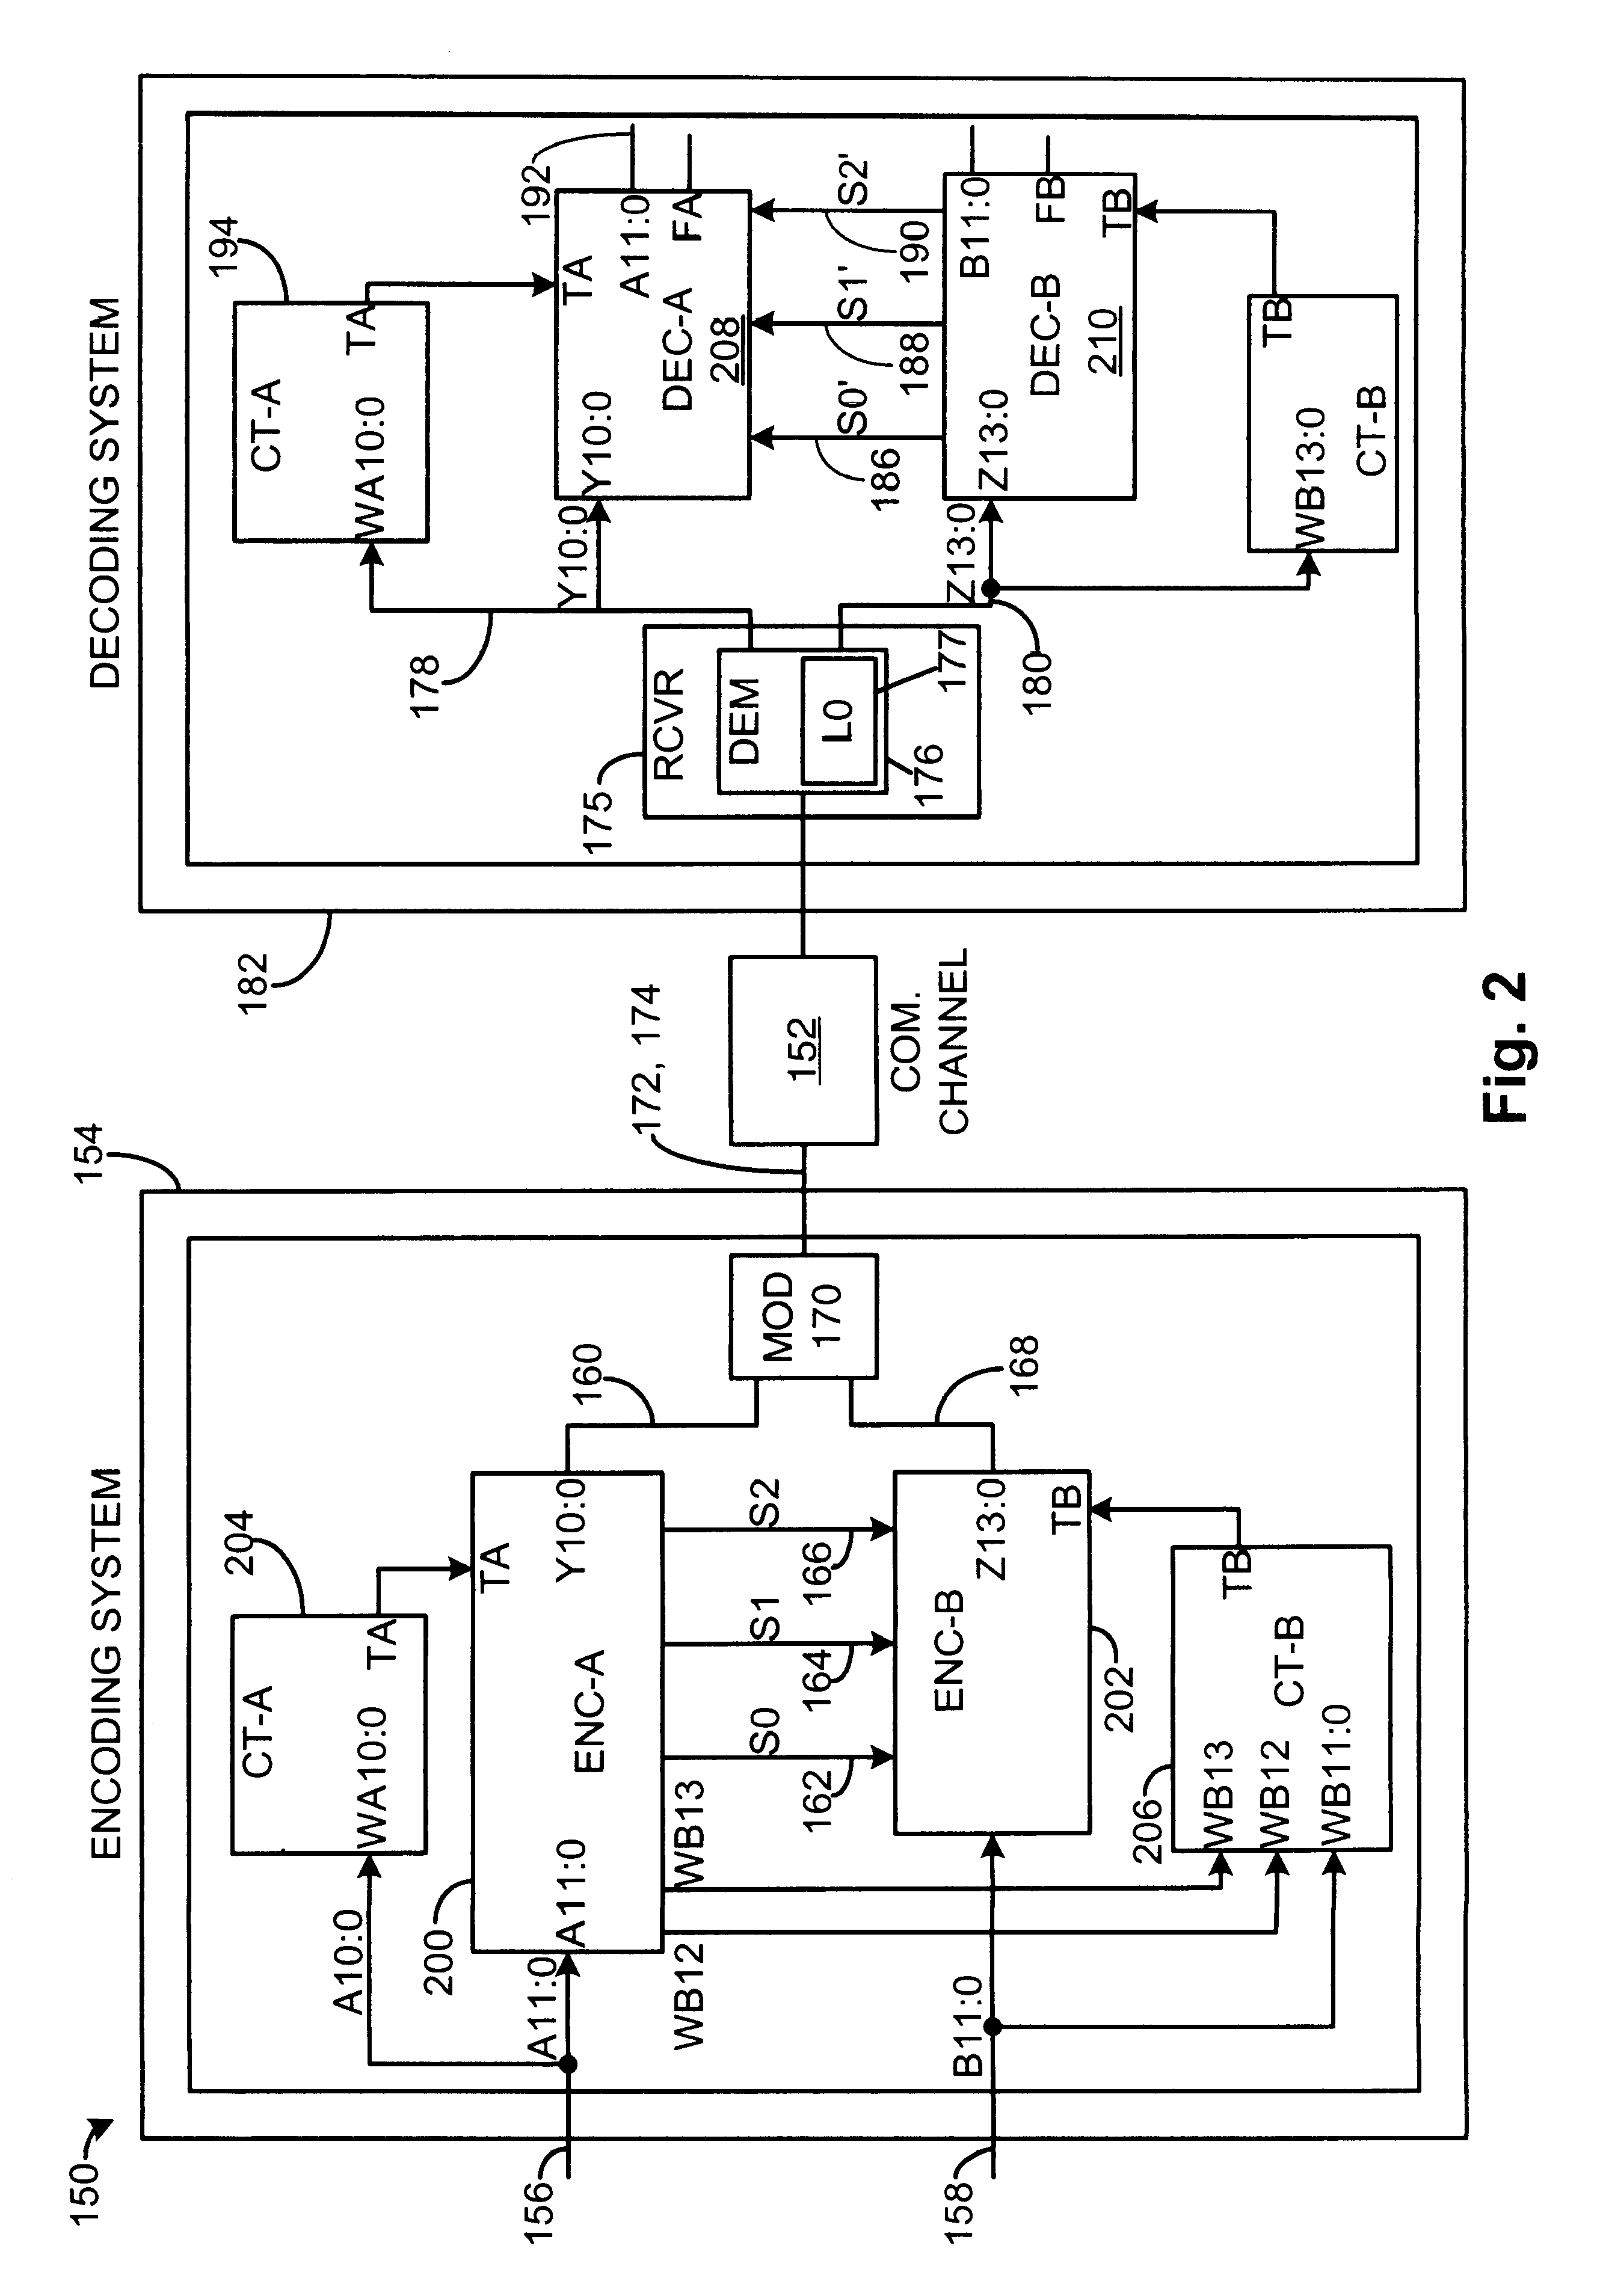 patent us encoding and decoding techniques for data in  patent drawing